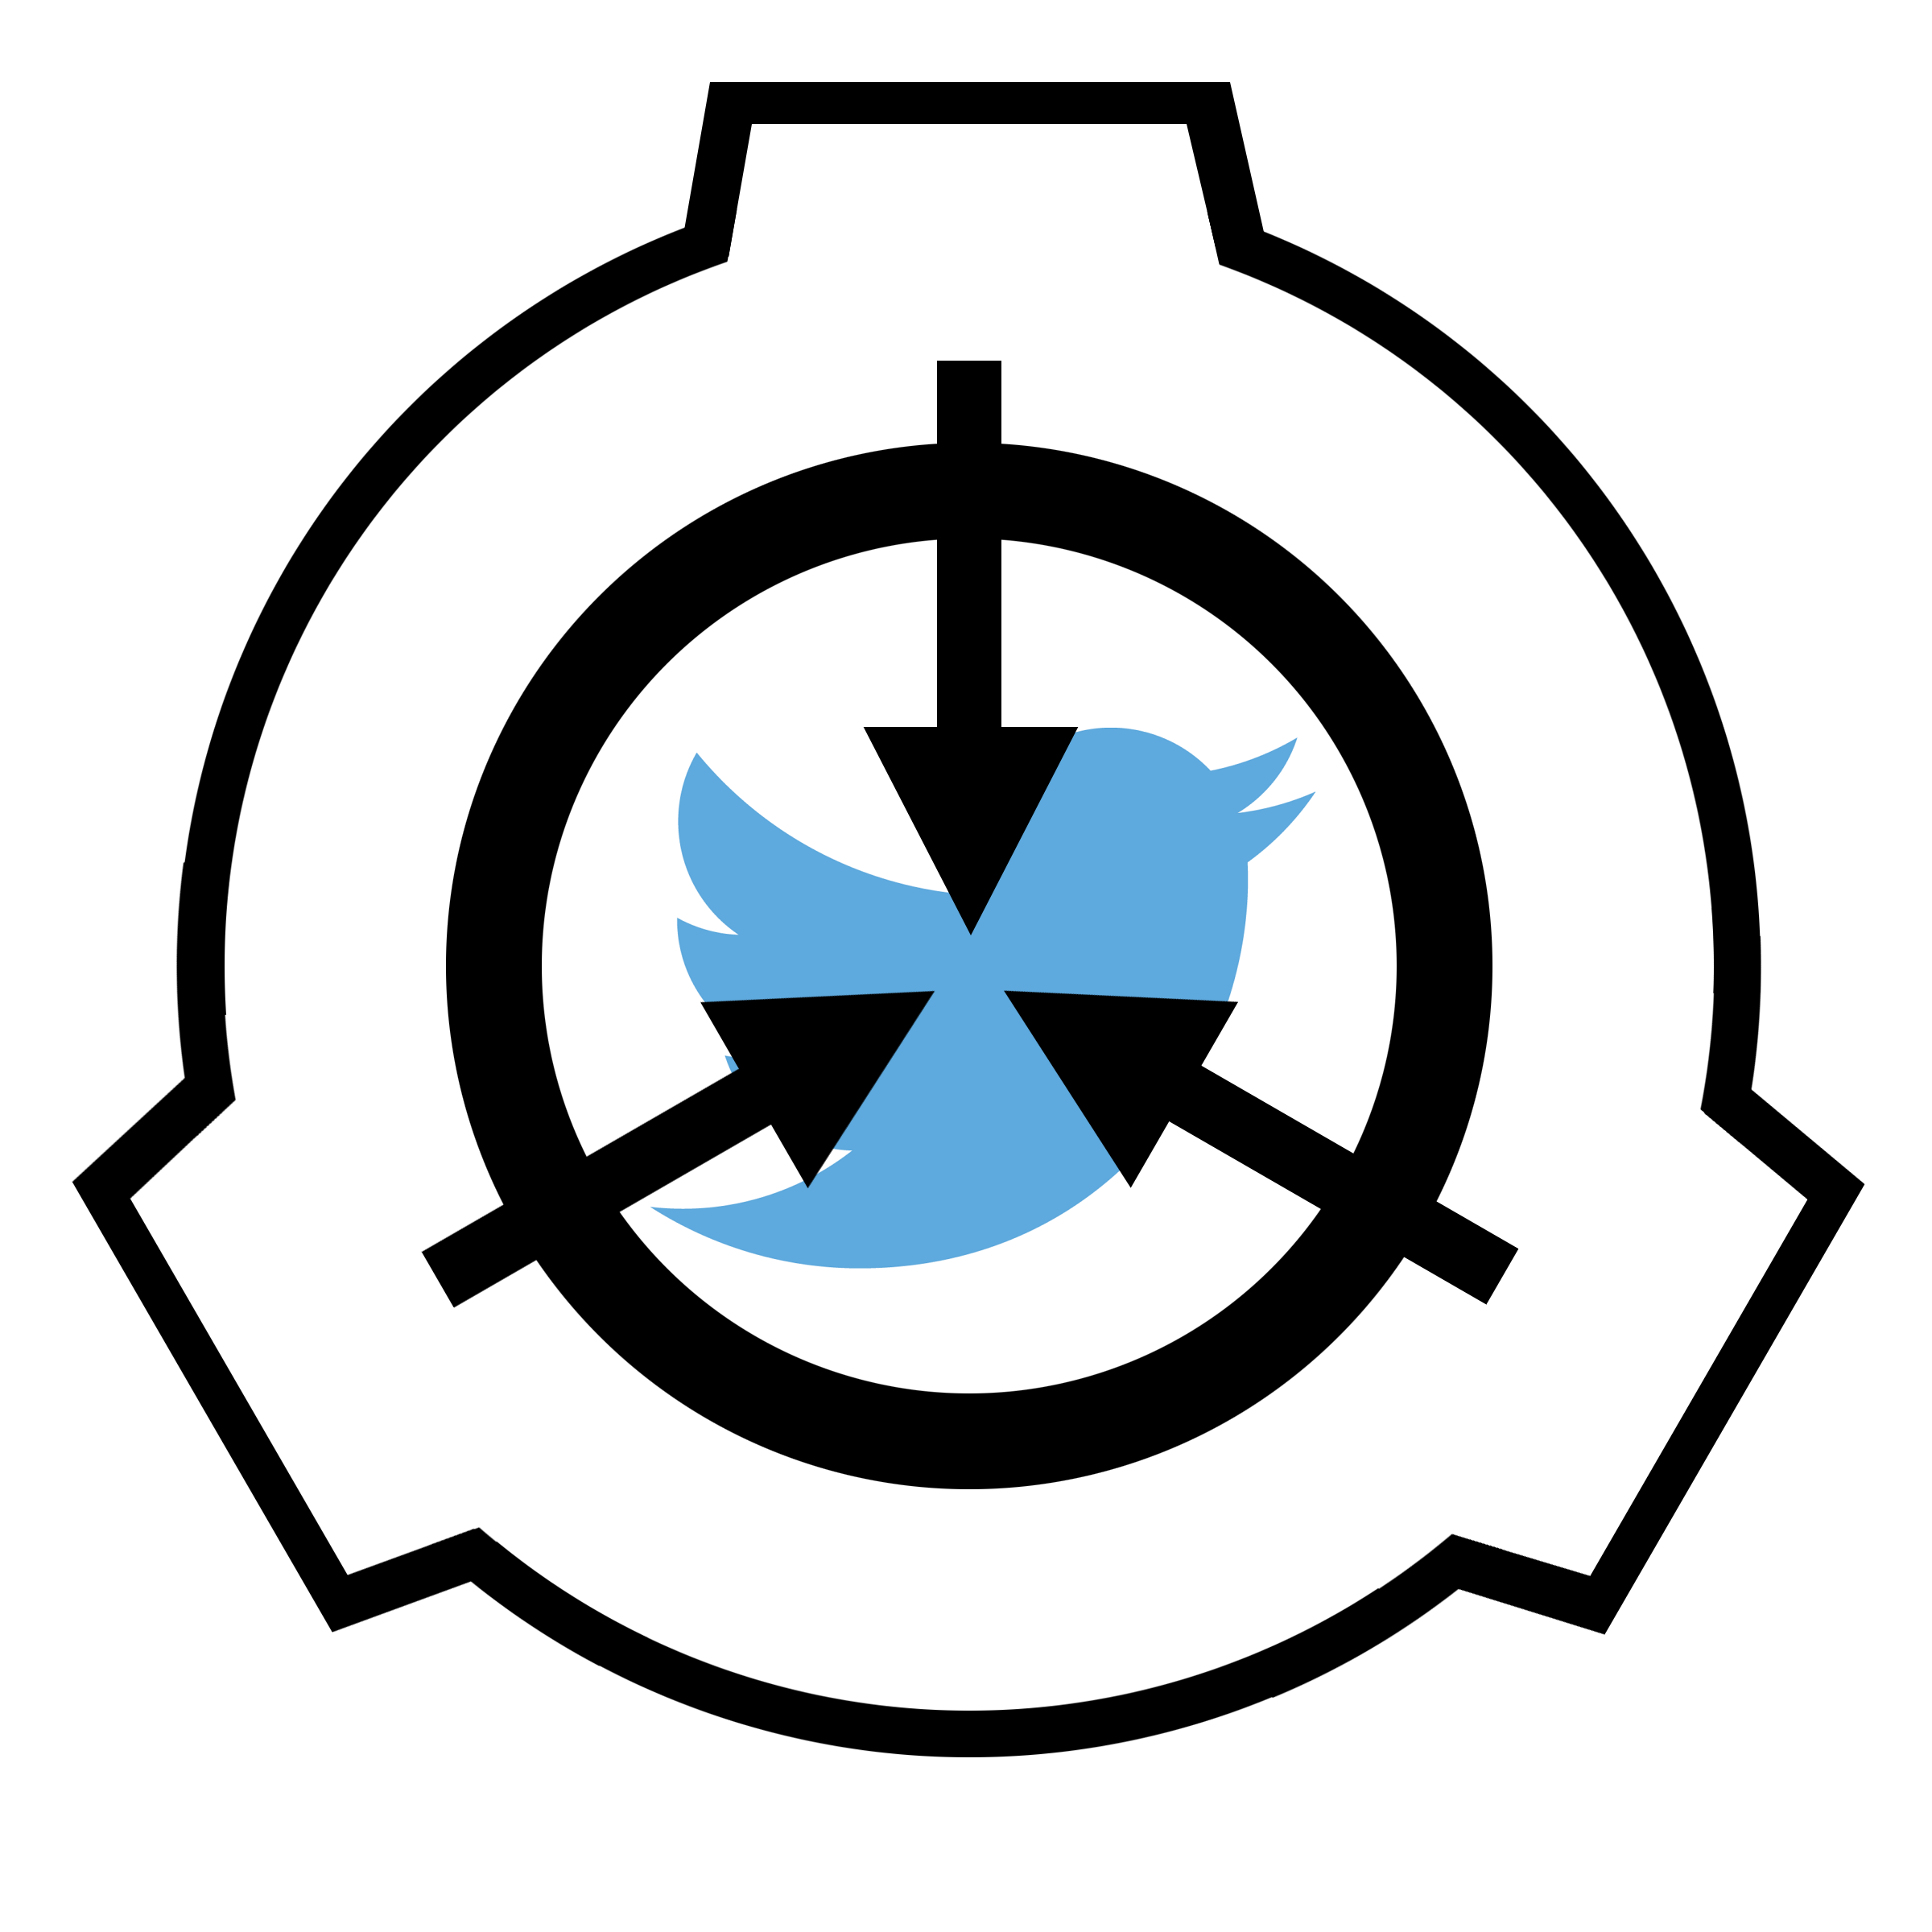 icon-twitter2.png